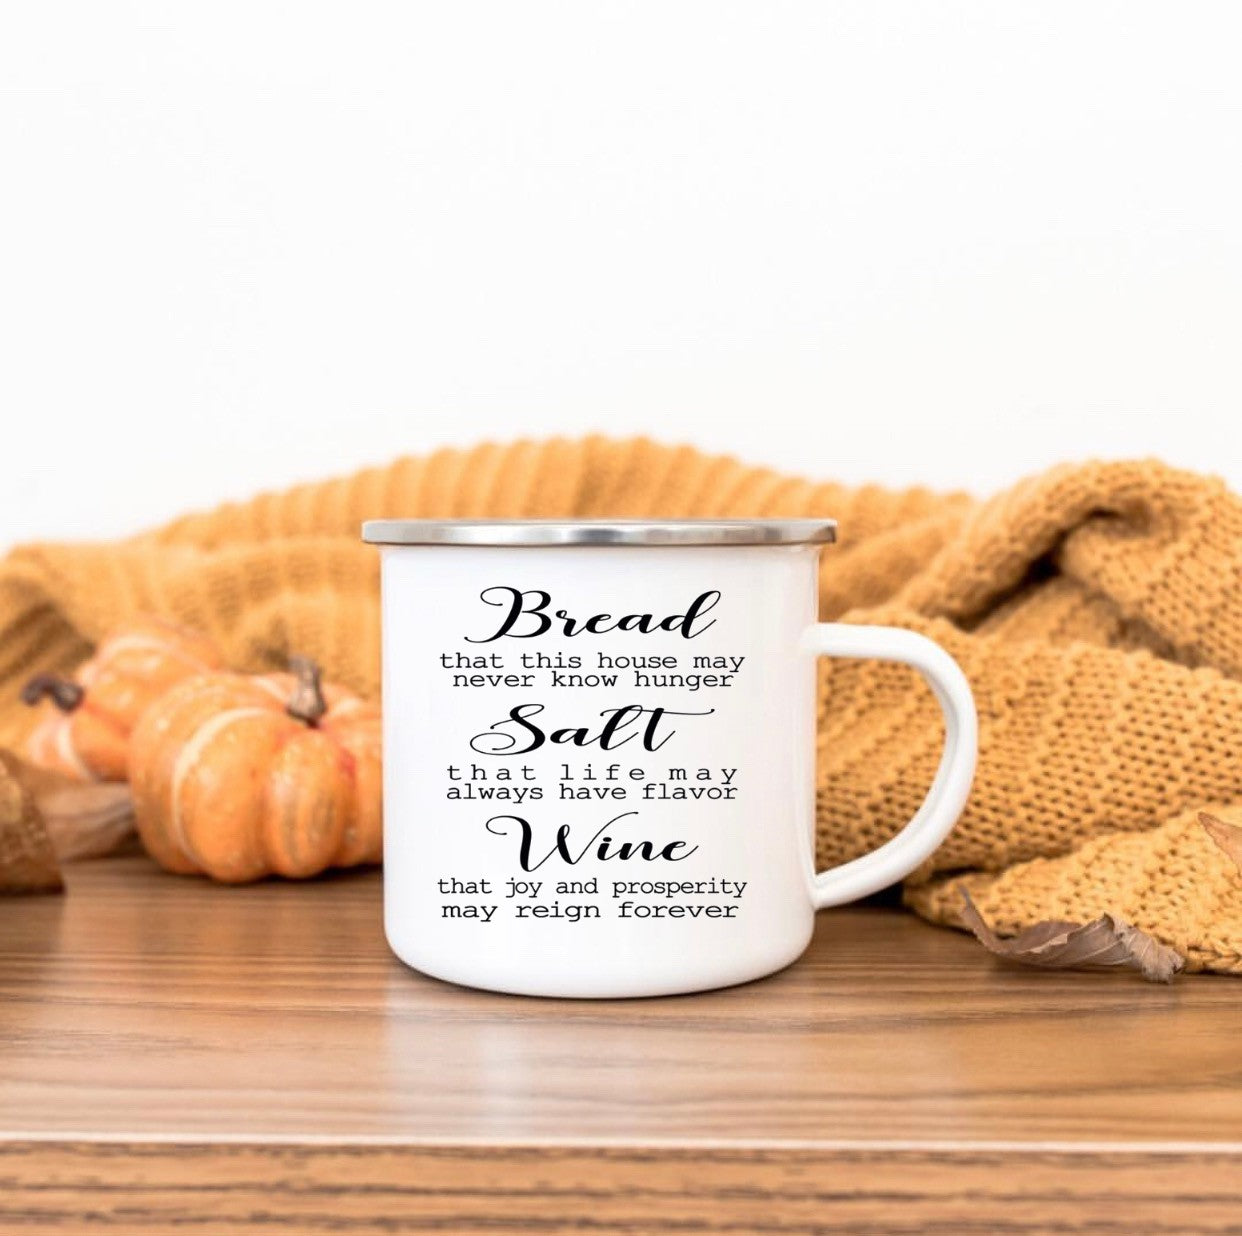 Bread-Salt-Wine 10oz camp mug